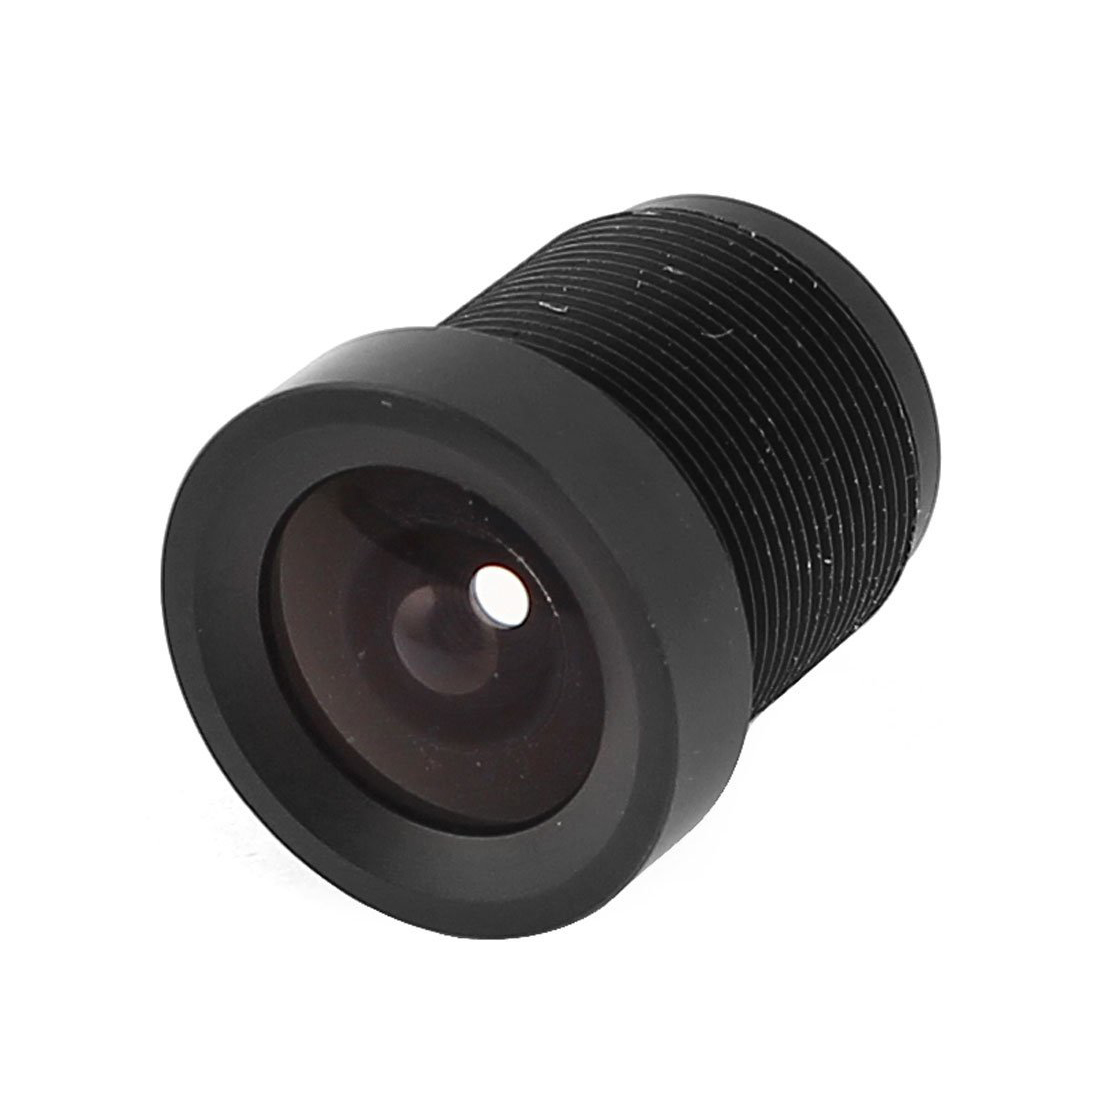 MOOL M12 thread Mount 3.6mm focal length F2.0 IR Lens for CCTV CCD Camera doumoo 330 330 mm long focal length 2000 mm fresnel lens for solar energy collection plastic optical fresnel lens pmma material